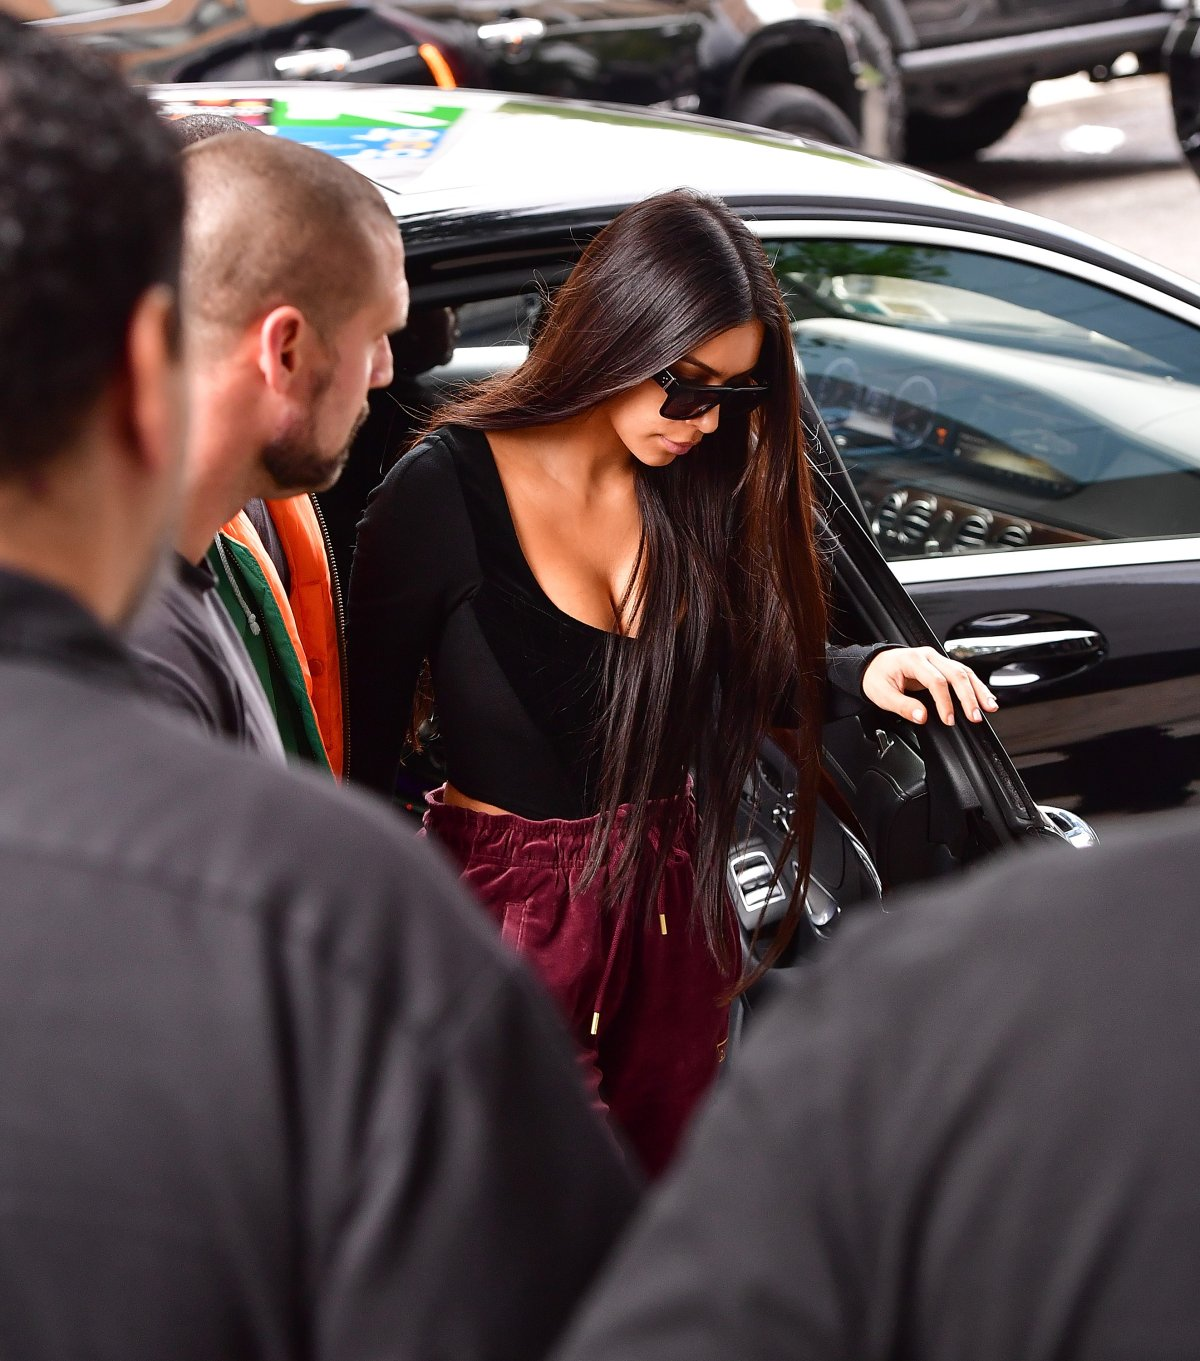 Kim Kardashian arrives to her Manhattan apartment after being robbed in her Paris, France hotel room on October 3, 2016 in New York City.